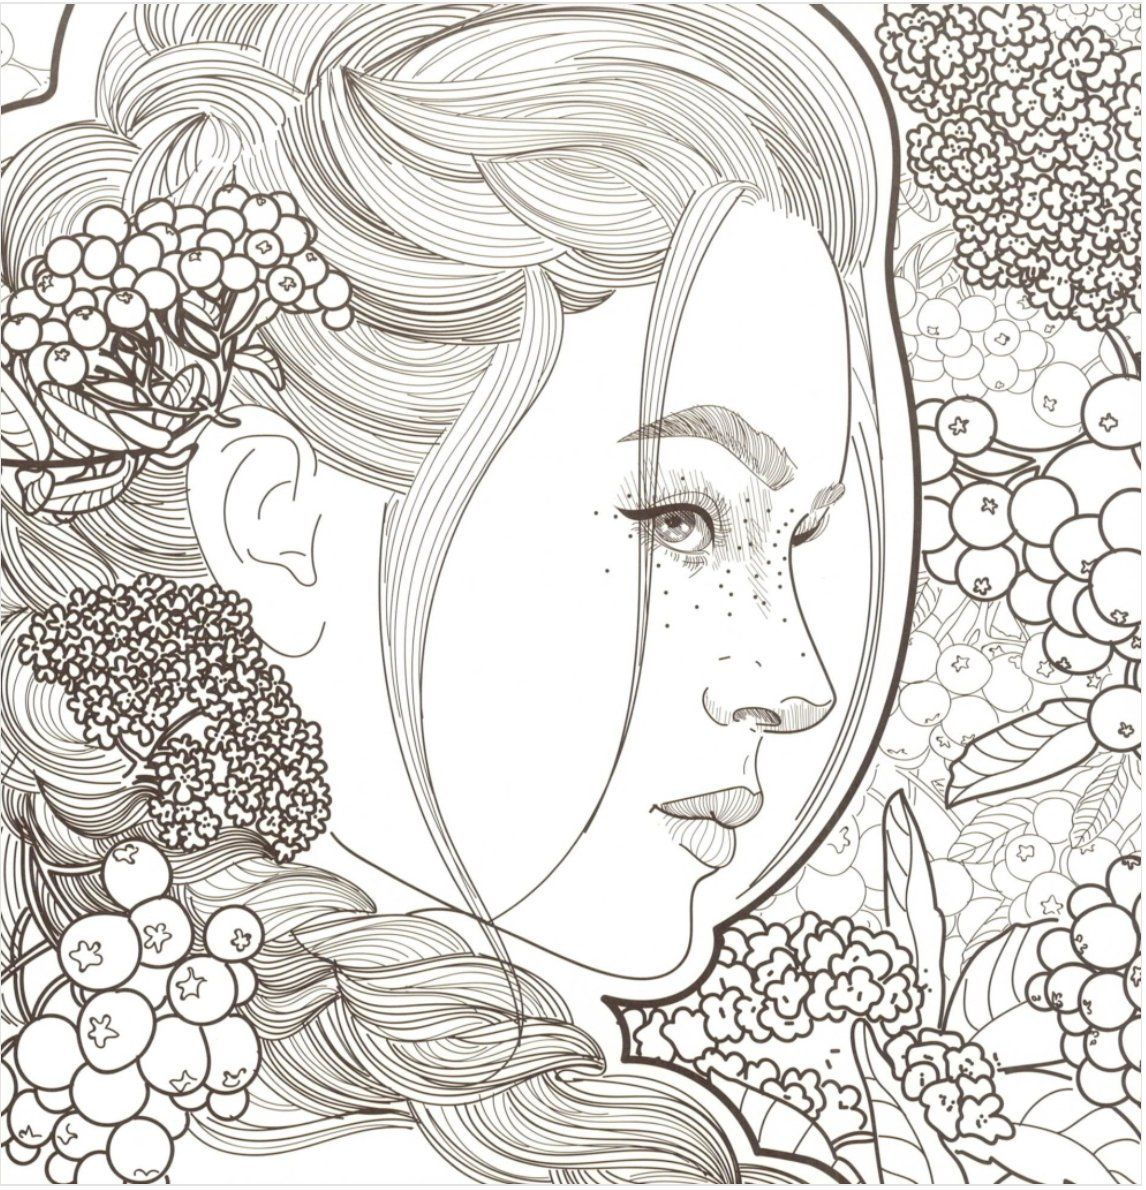 When I First Saw You Korean Coloring Book In 2021 Fairy Coloring Pages Coloring Books Coloring Pages